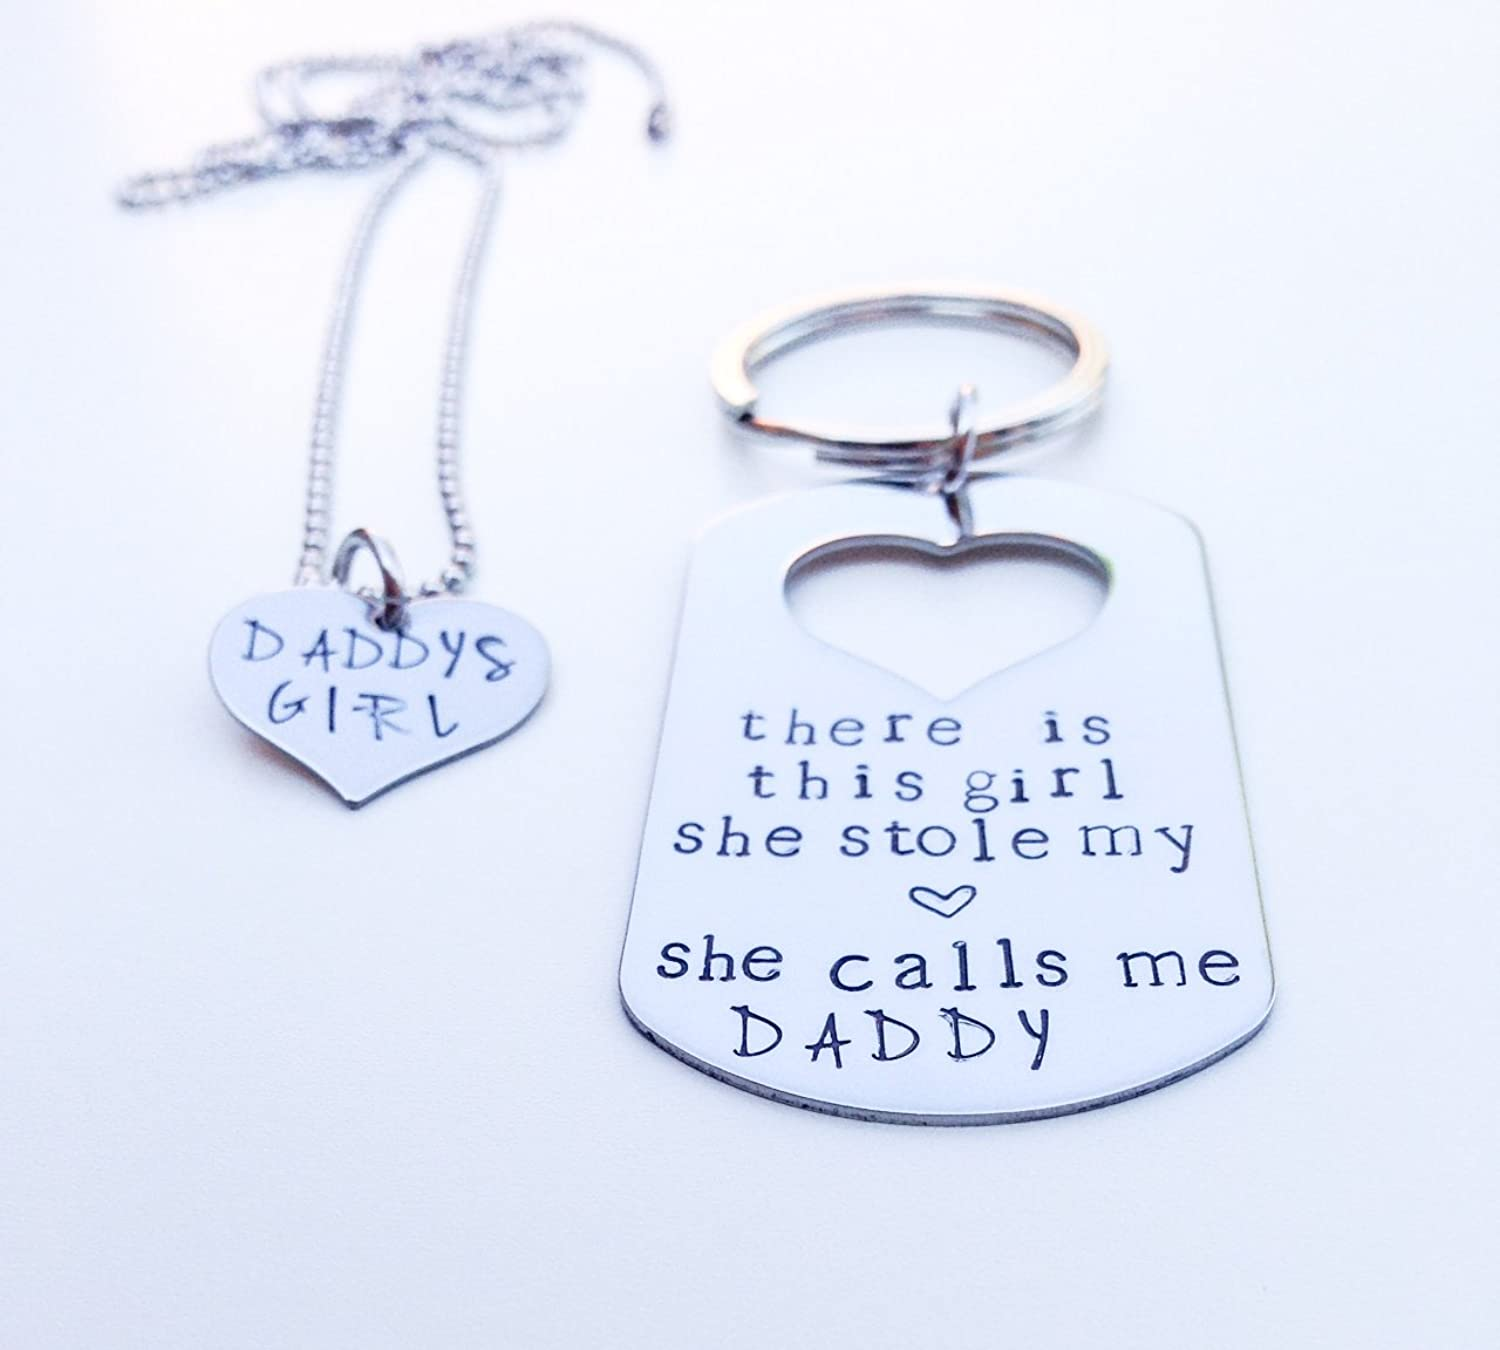 Superior Dad And Daughter Gifts Part - 7: Amazon.com: There Is The Girl She Stole My Heart She Calls Me Daddy -  Daughter Keychain, Necklace Set - Fatheru0027s Day Gift: Jewelry